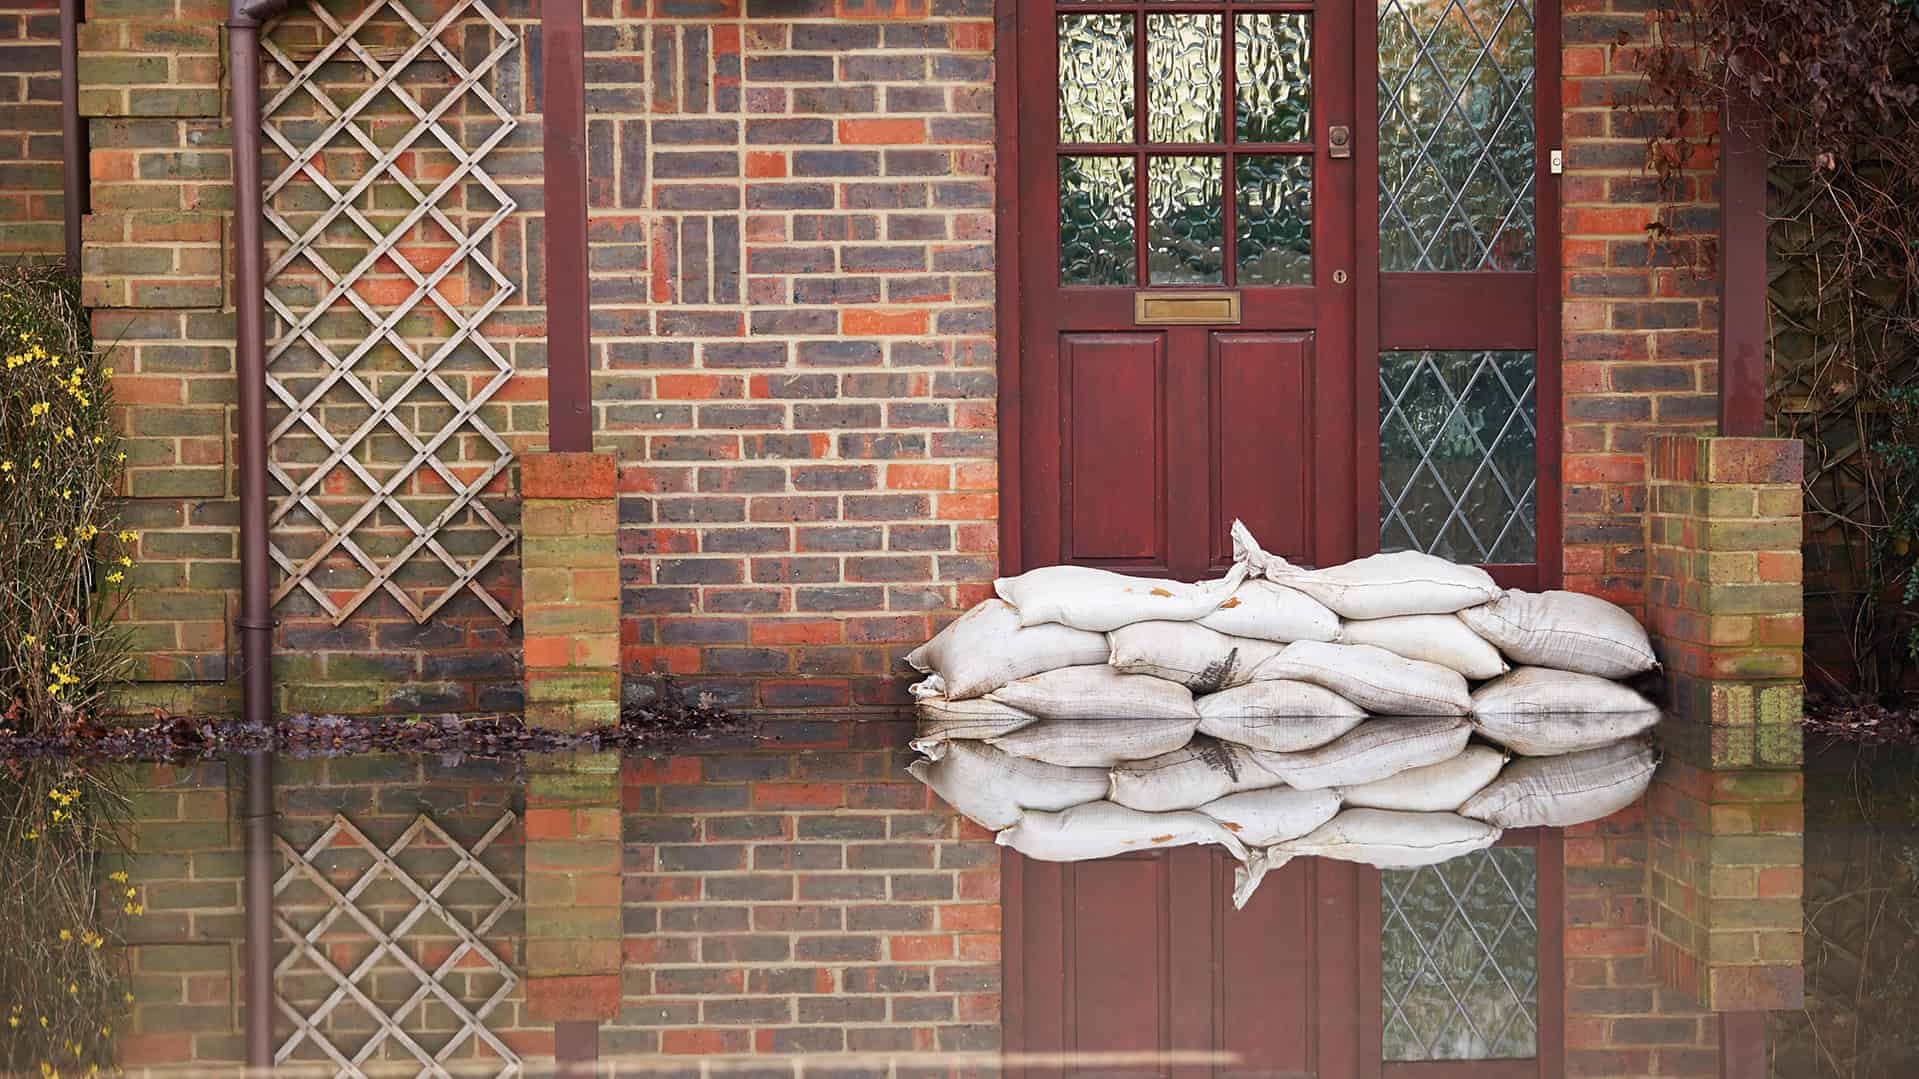 Flooded house with sandbags our front